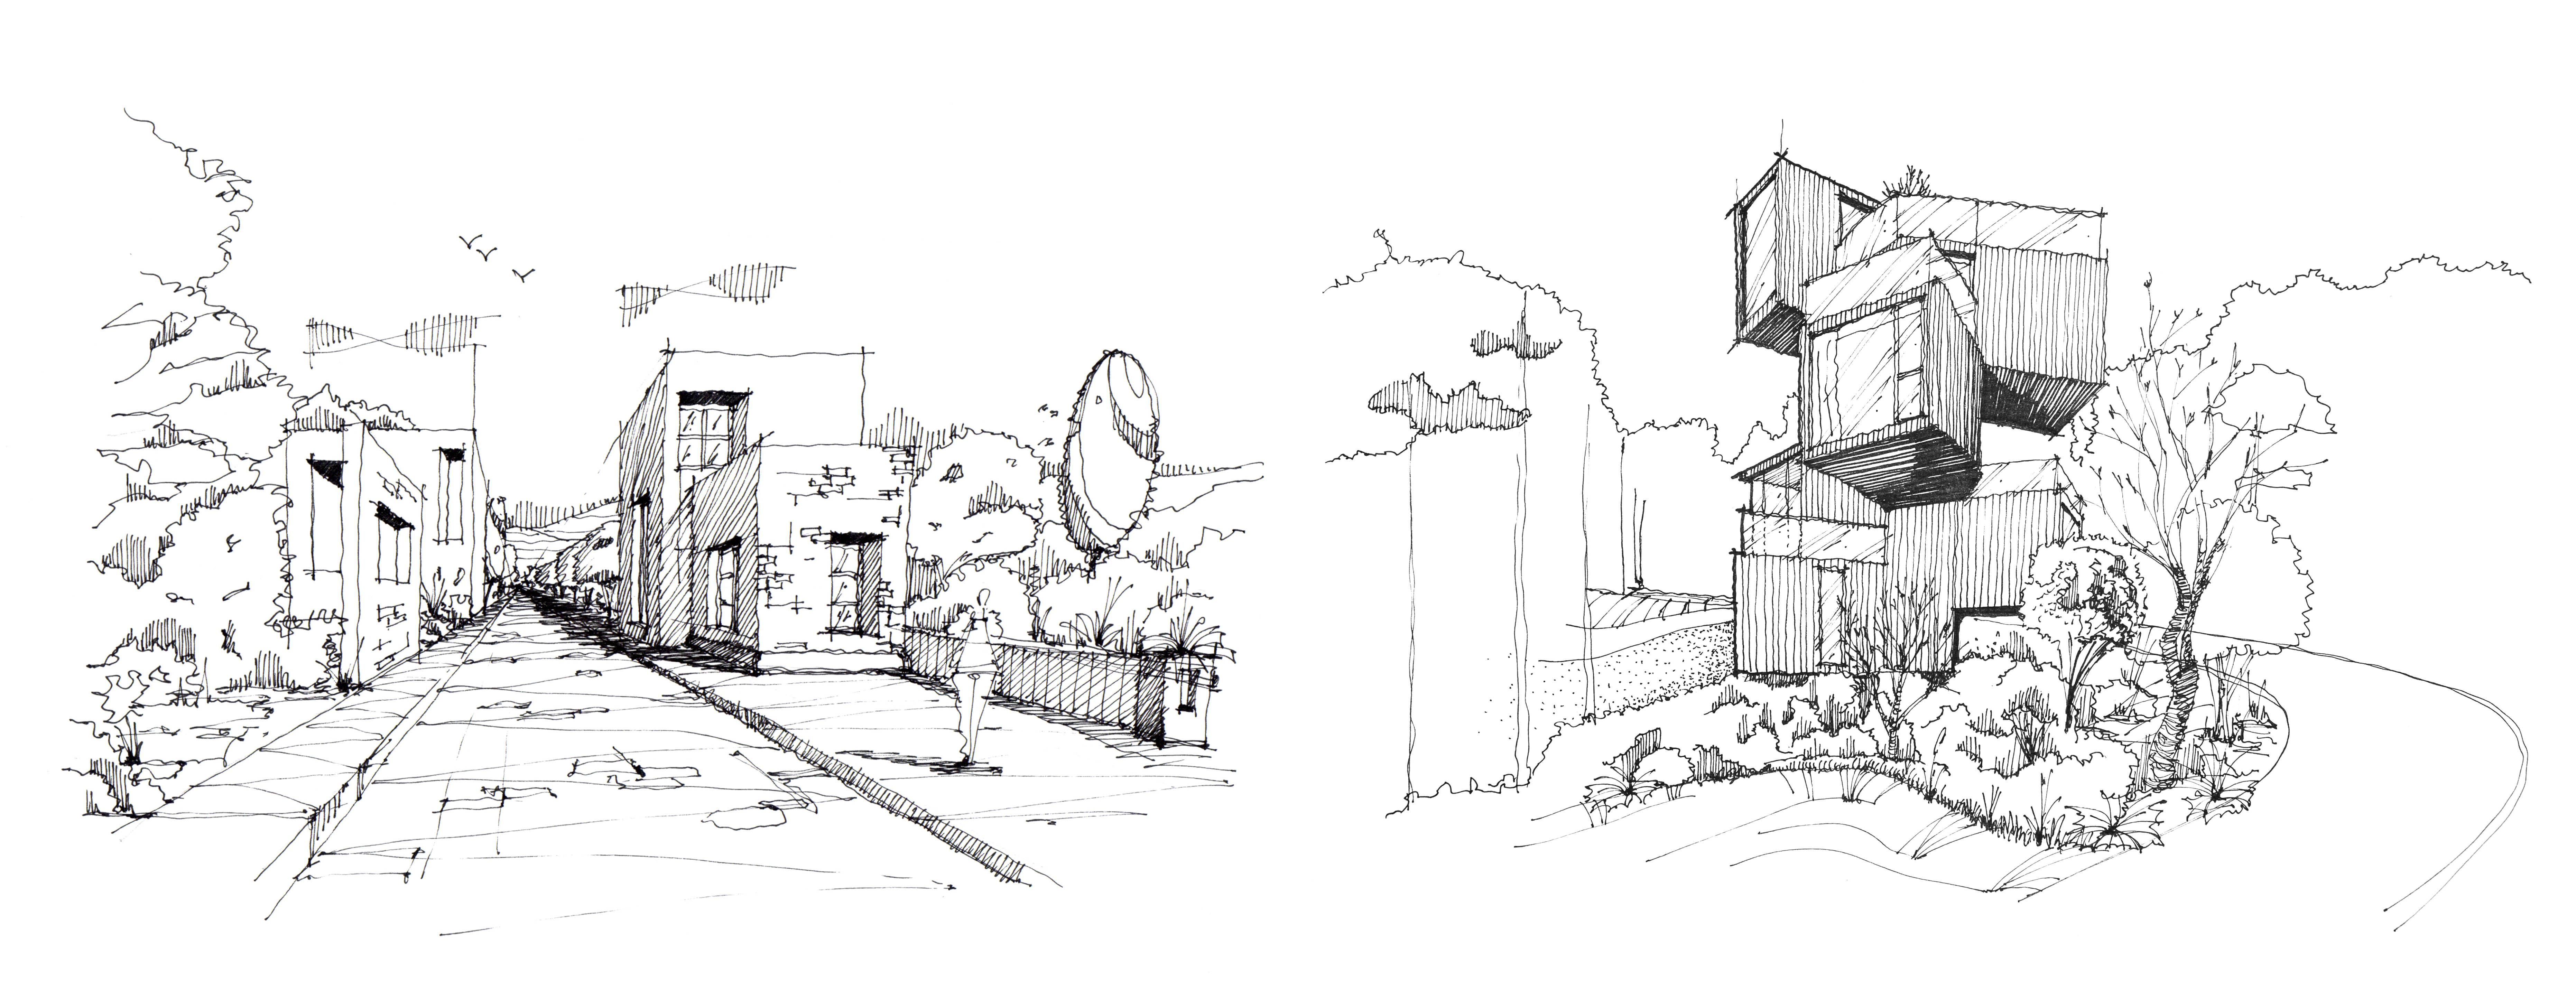 Sketch Like an Architect: Step-by-Step from Lines to Perspective ...